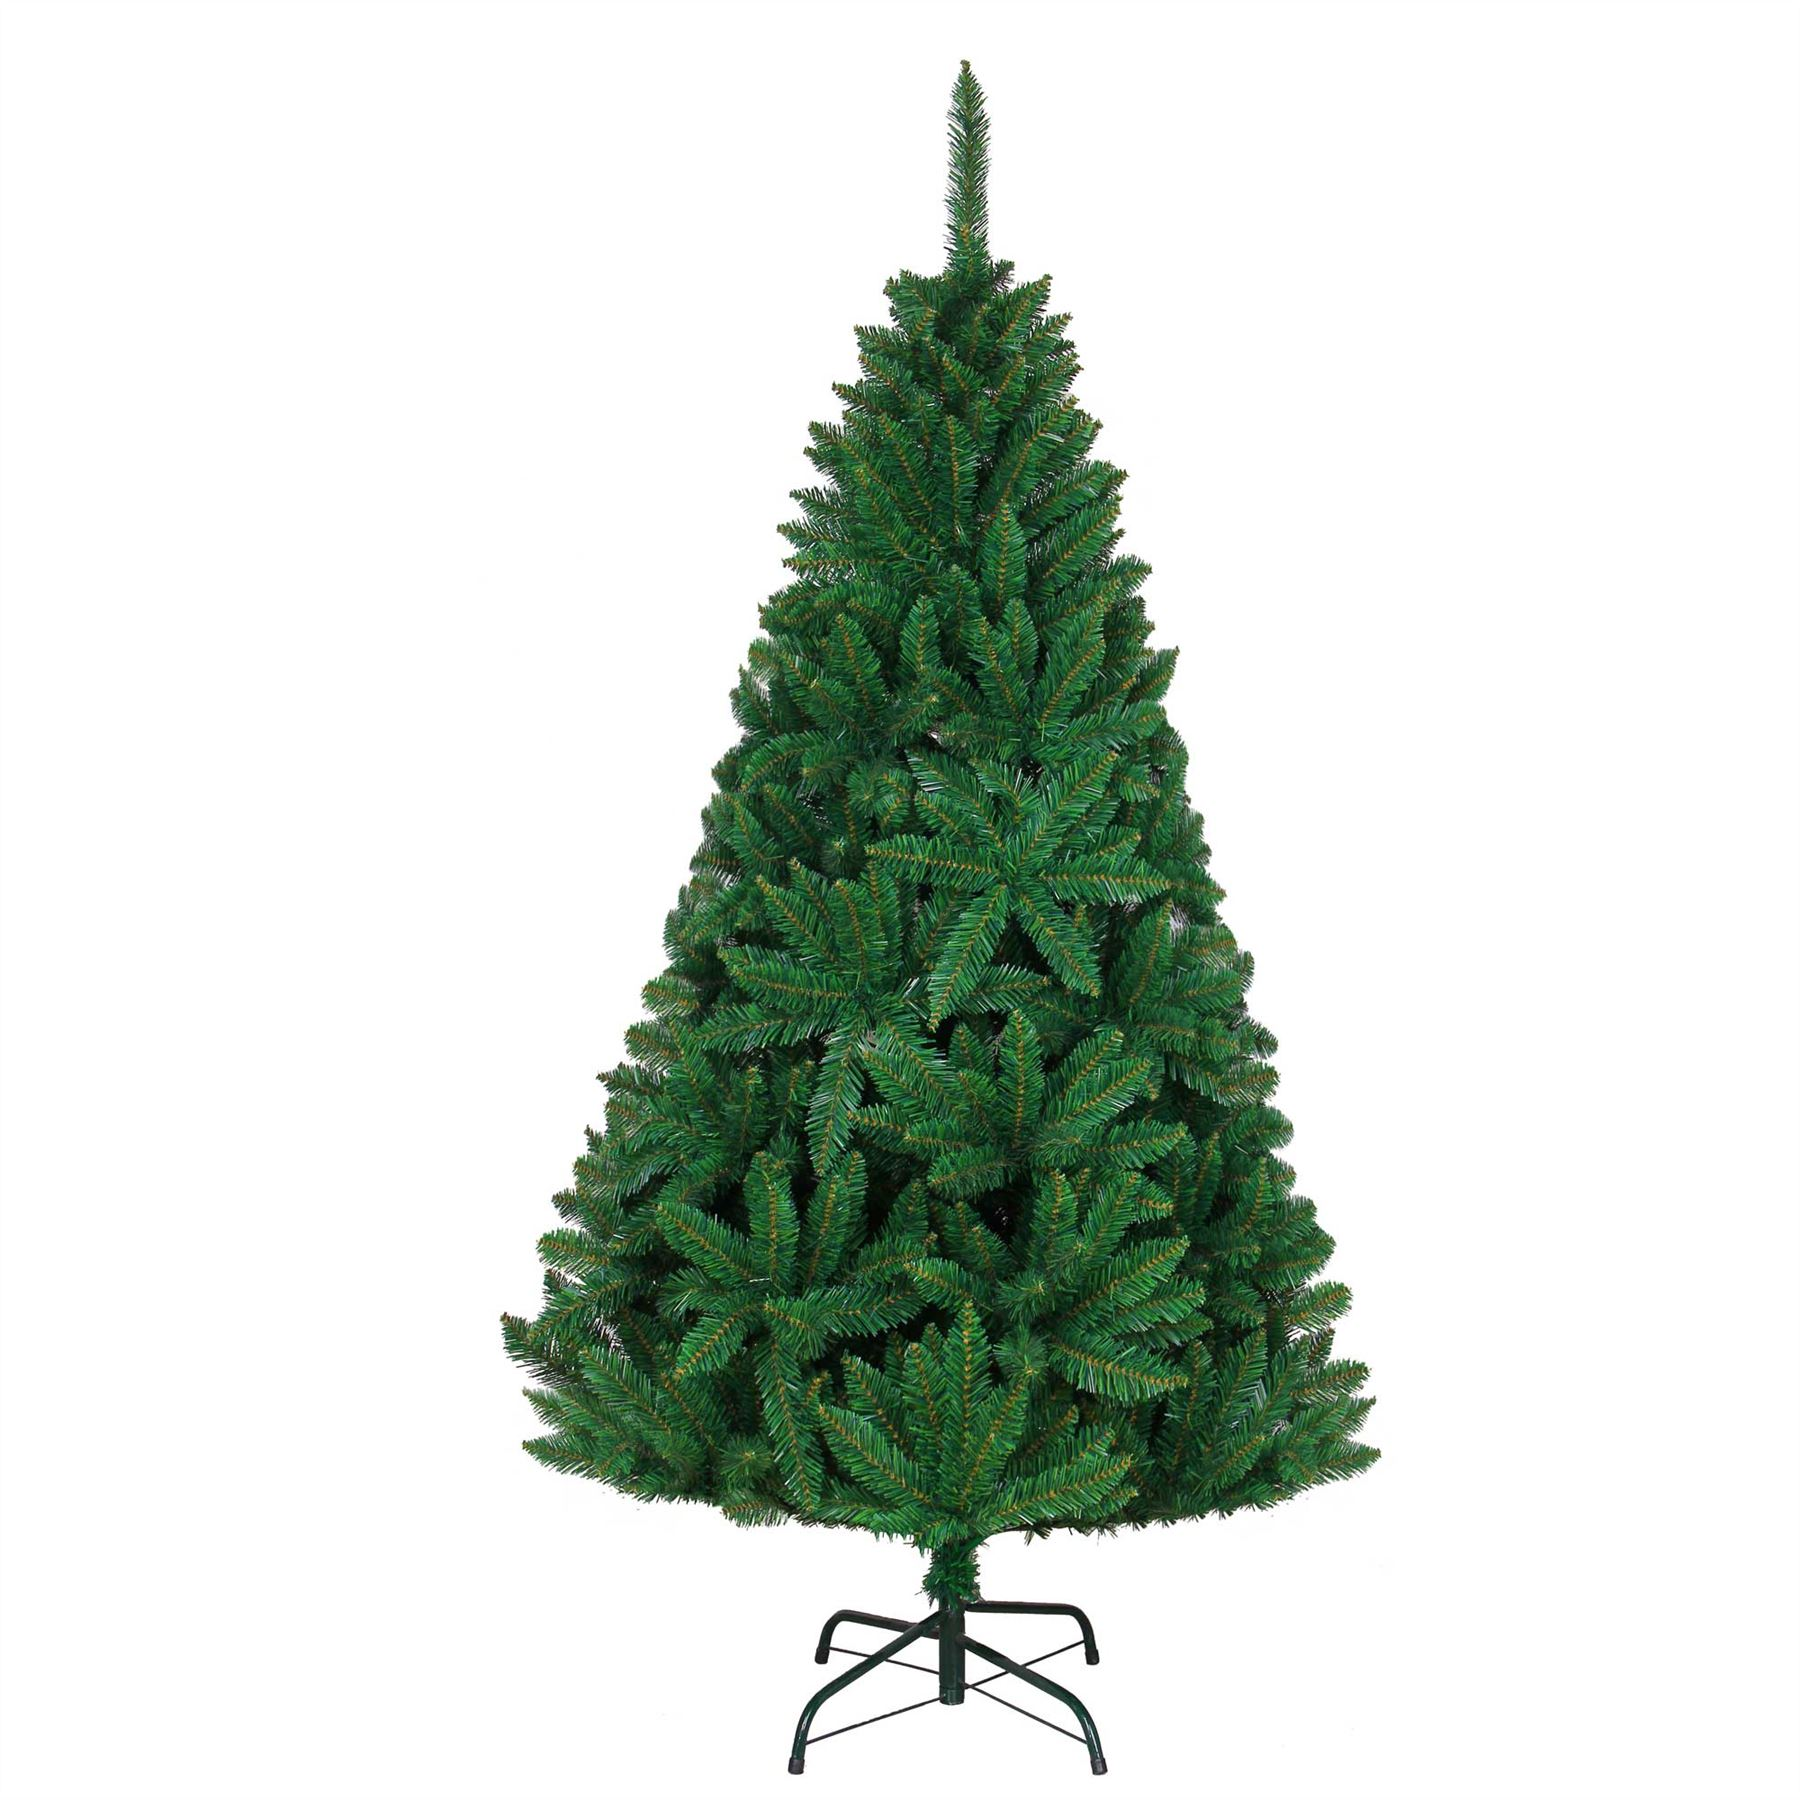 Artificial Christmas Tree Decorated Snow White Traditional Xmas ...